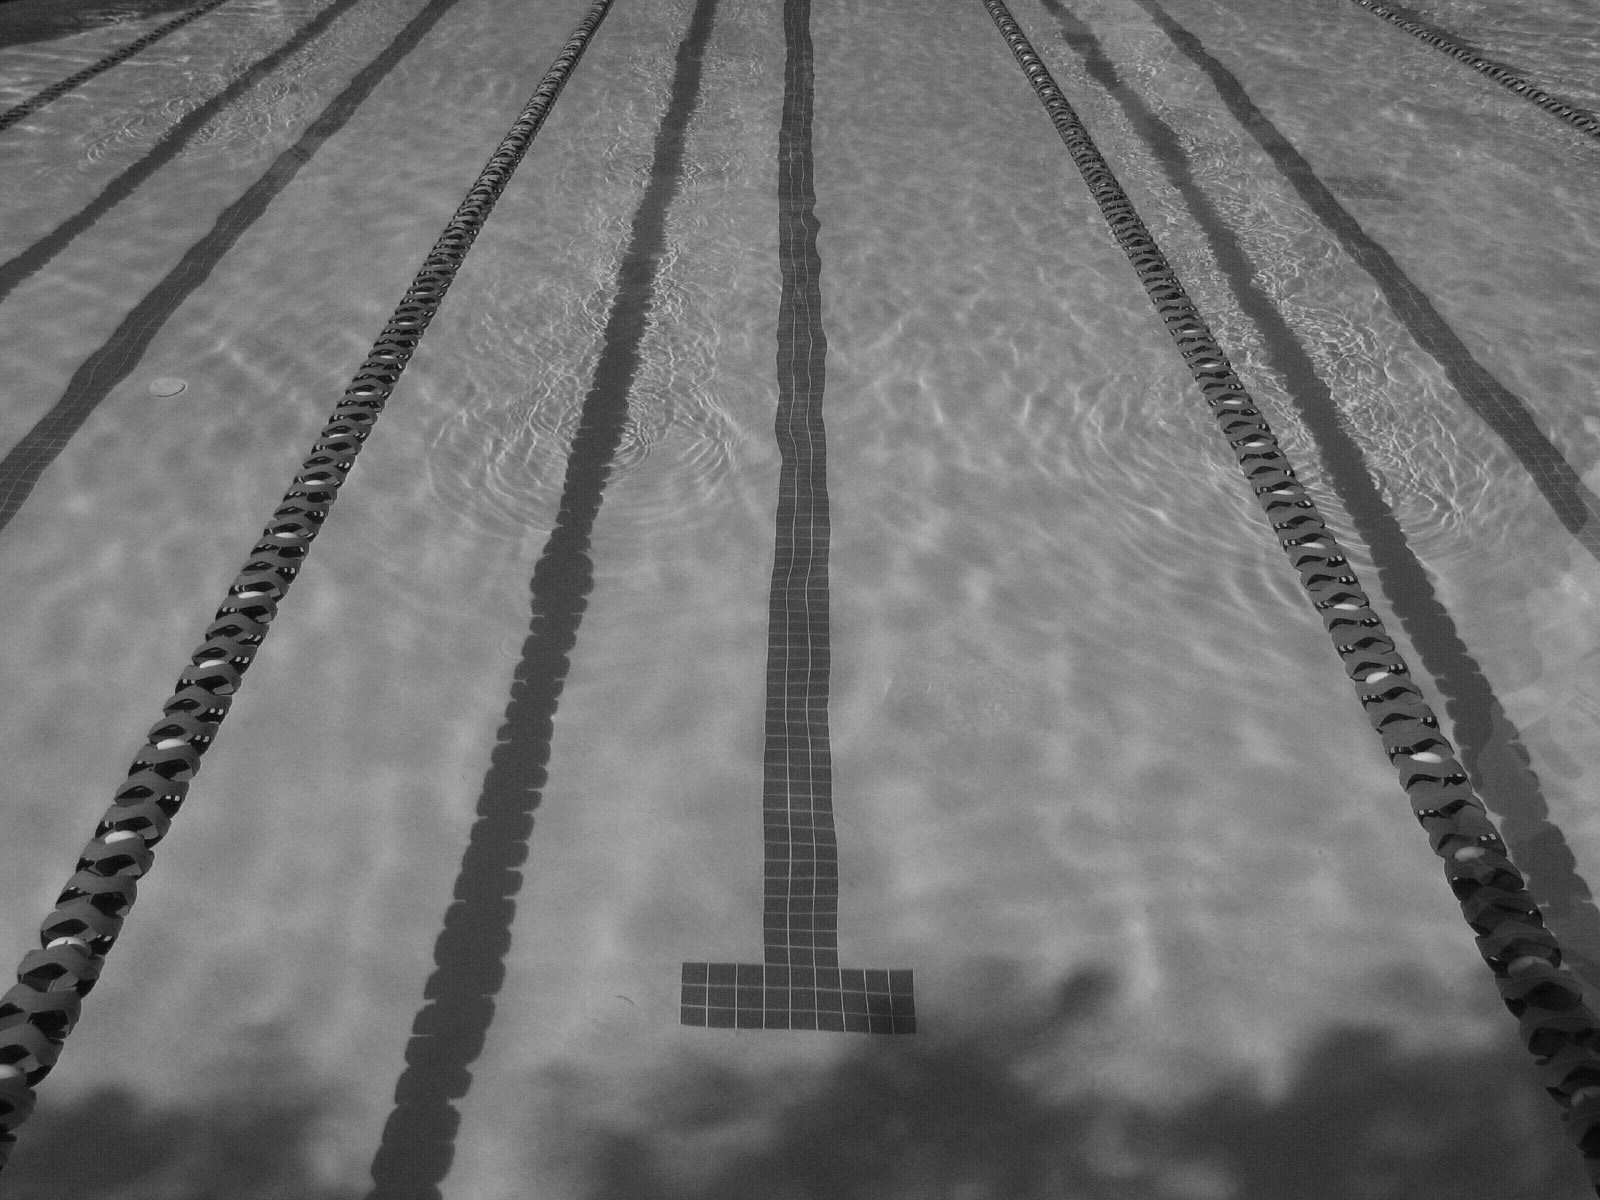 Swimming pool lane lines background Background Free Image Of Swimming Pool Lane Lines Background Ropes Ropes Daksh An Underwater View Of The Masterfile Swimming Pool Lane Lines Background Ropes Ropes Daksh An Underwater